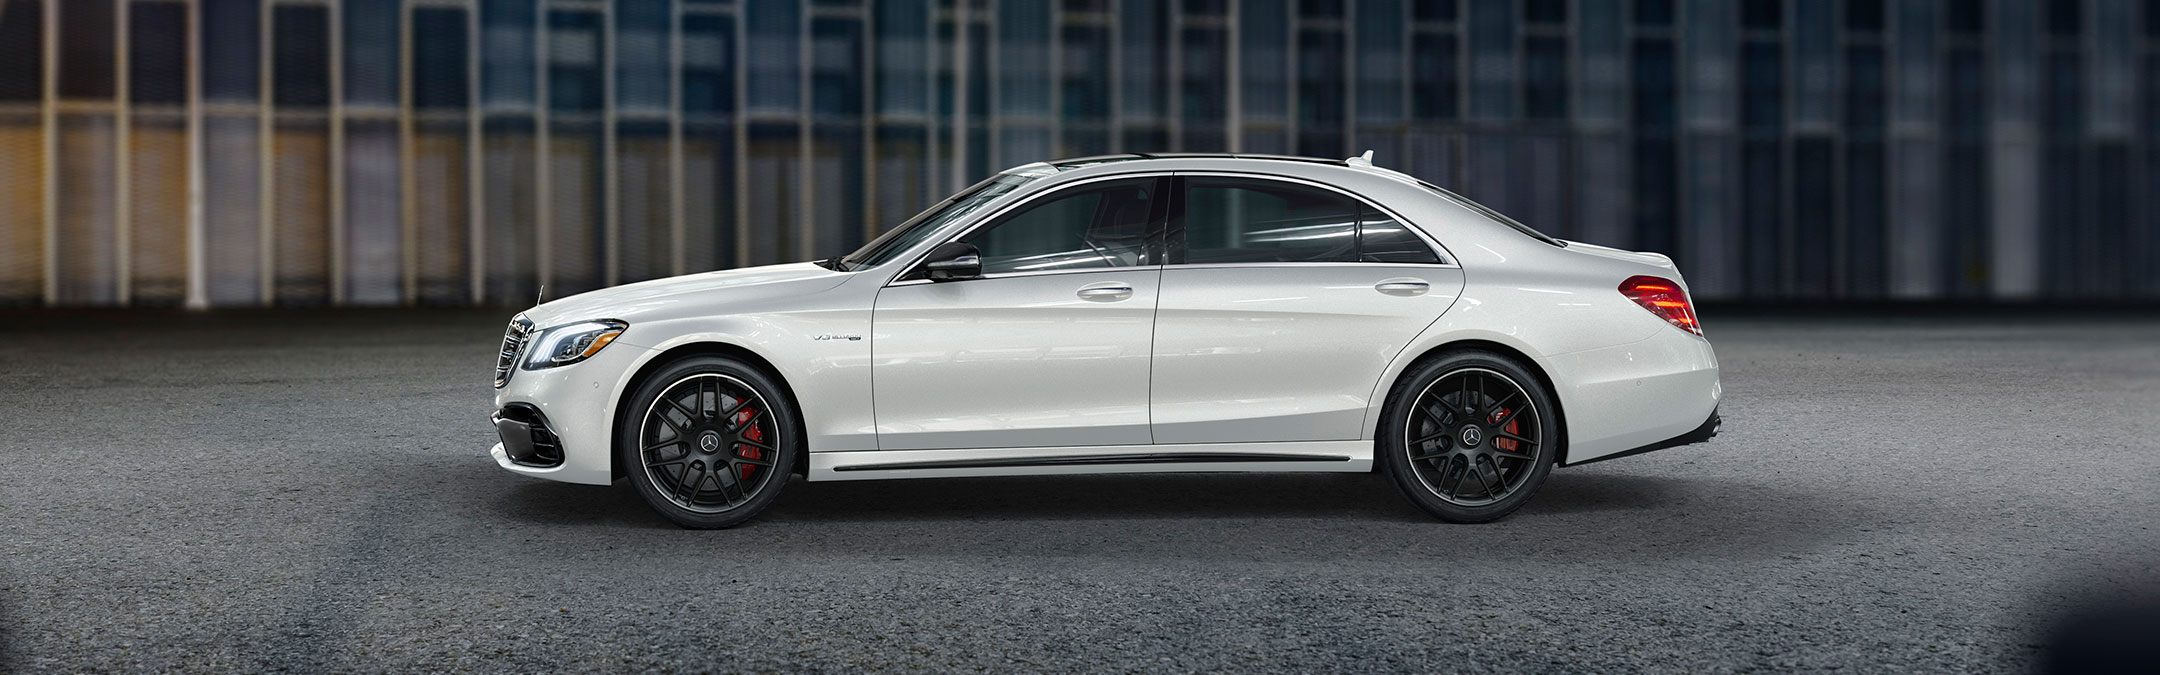 Performances de la Berline Mercedes-AMG S 2019